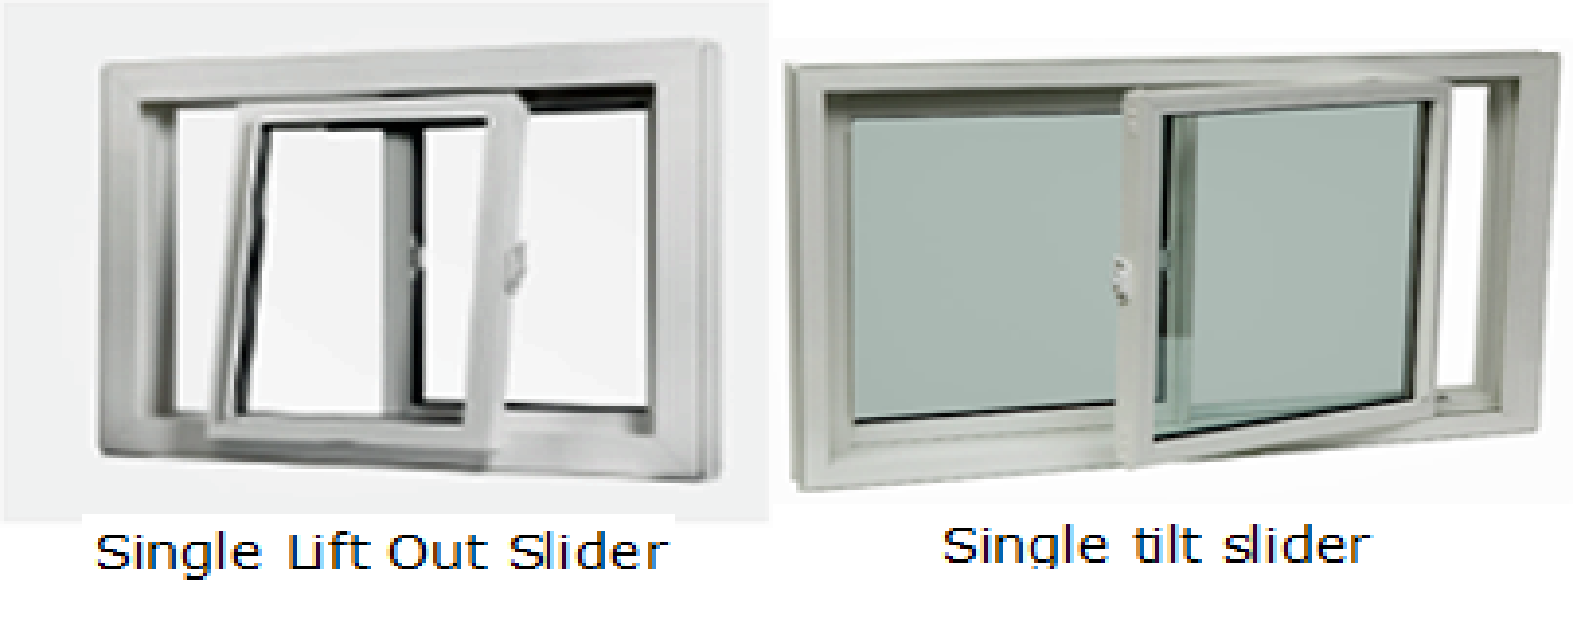 Single Tilt Slider Window Diagram